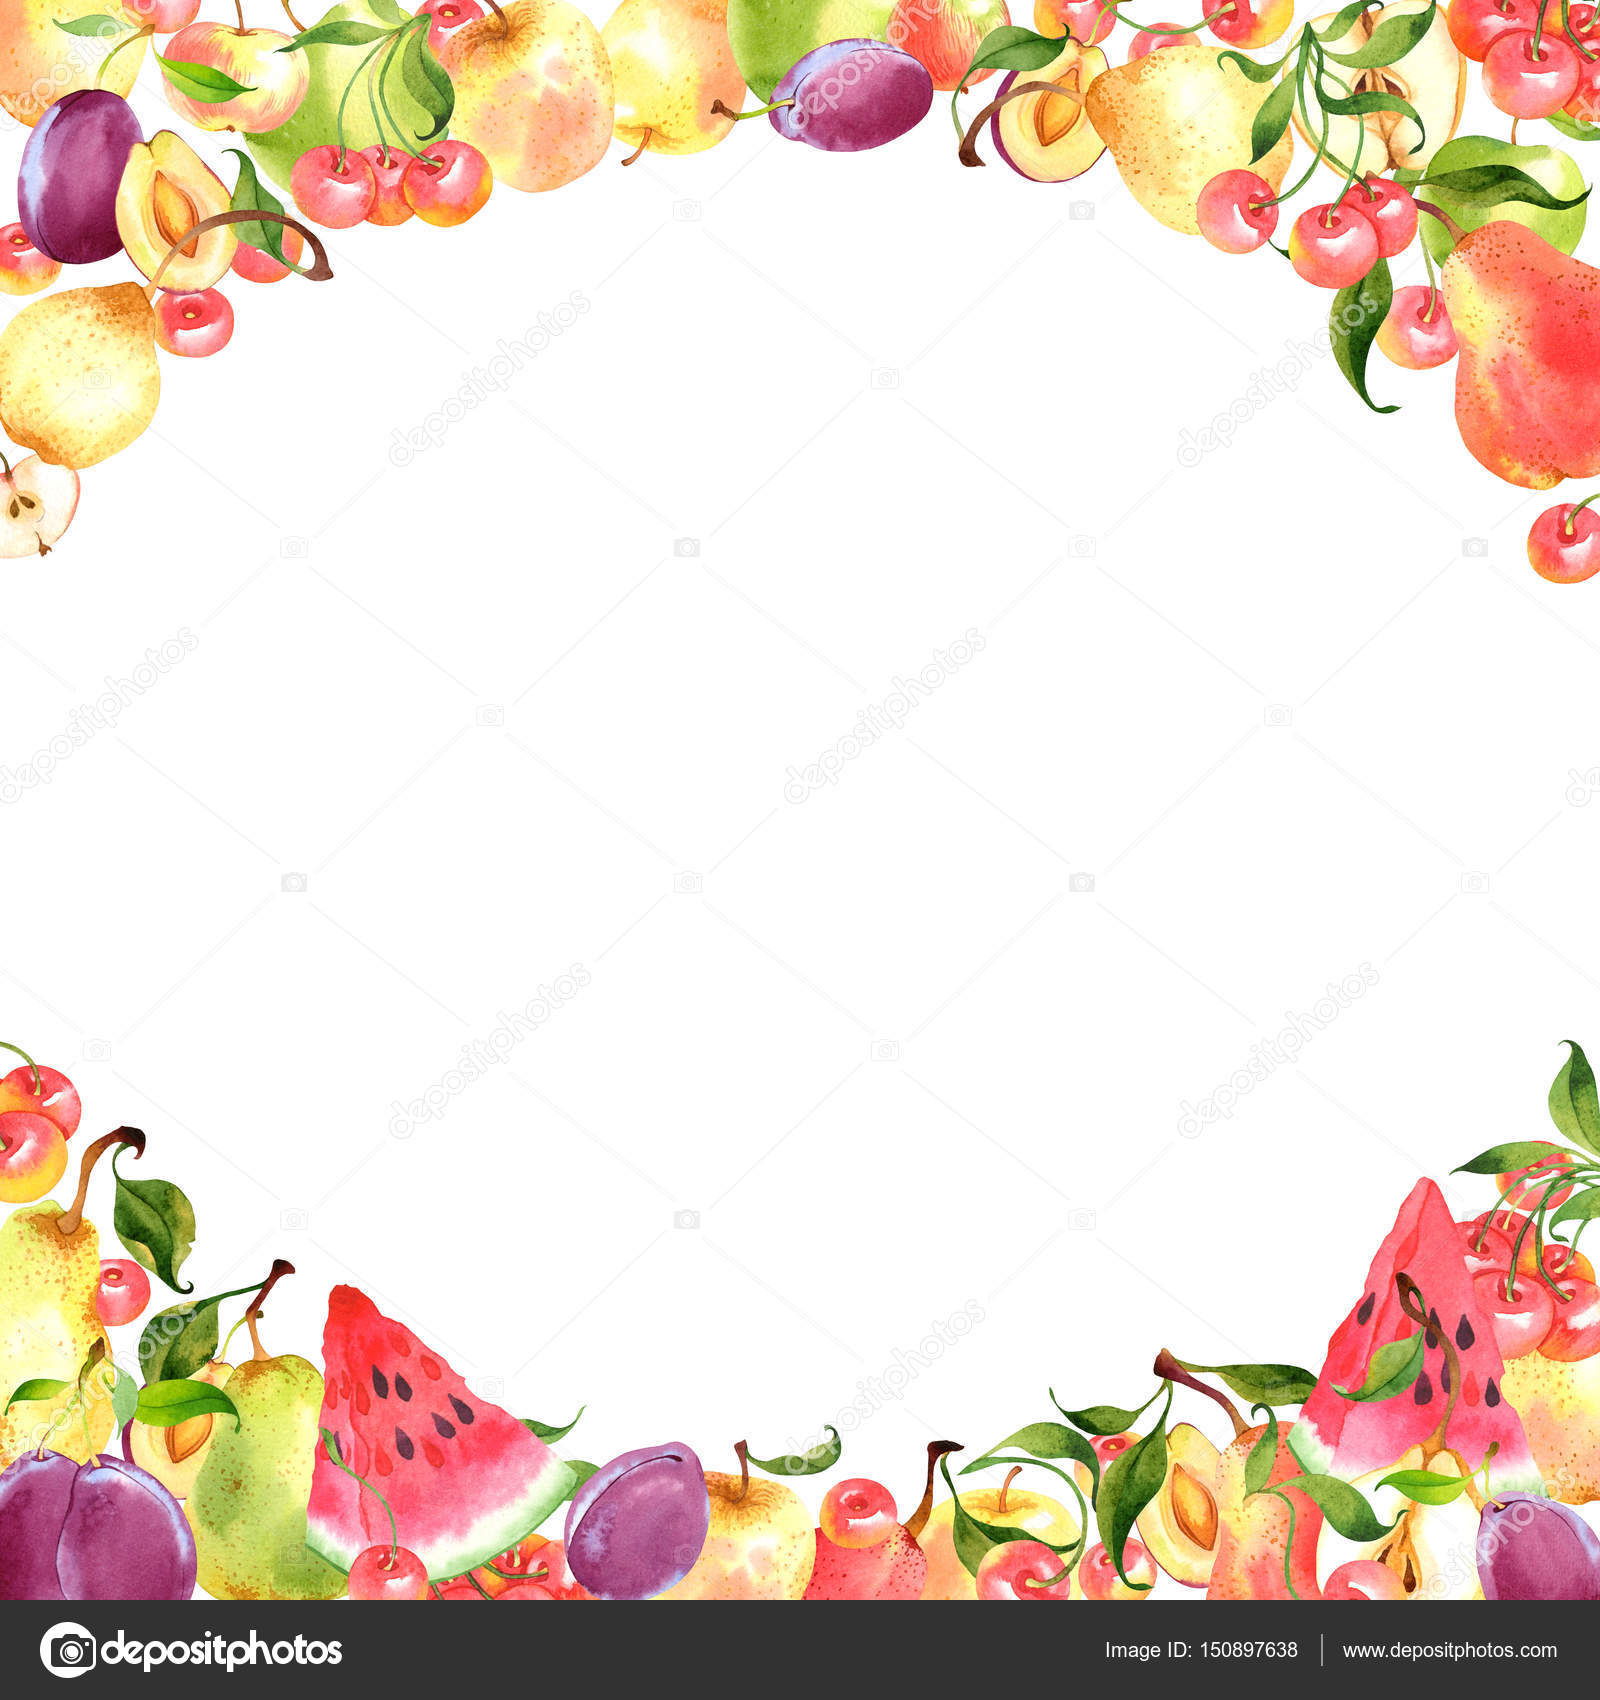 Watercolor fruit frame — Stock Photo © achtung #150897638